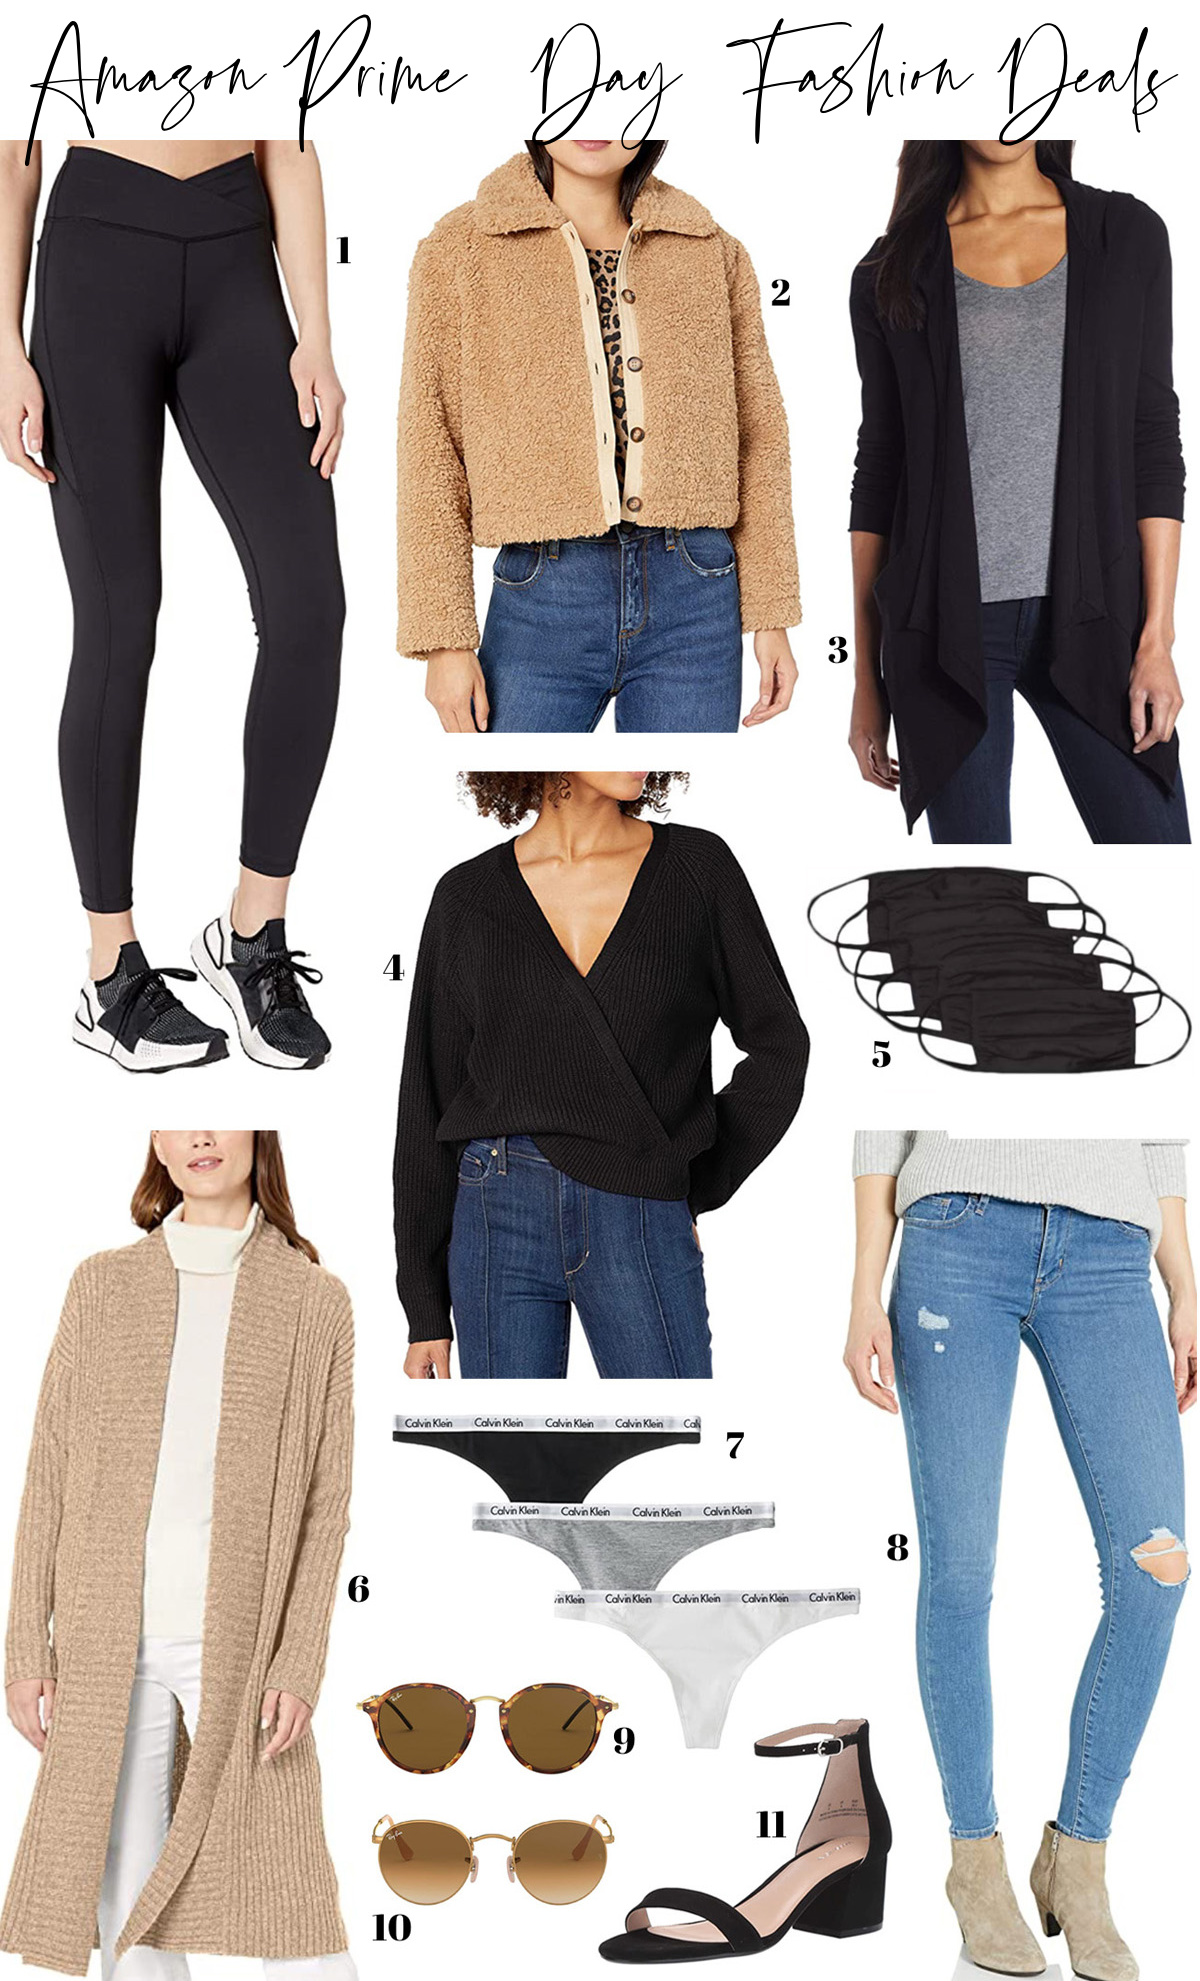 Amazon Prime day deals | Amazon deals | best deals on Amazon | jackets | fitness apparel | masks | beauty and fashion blogger Mash Elle